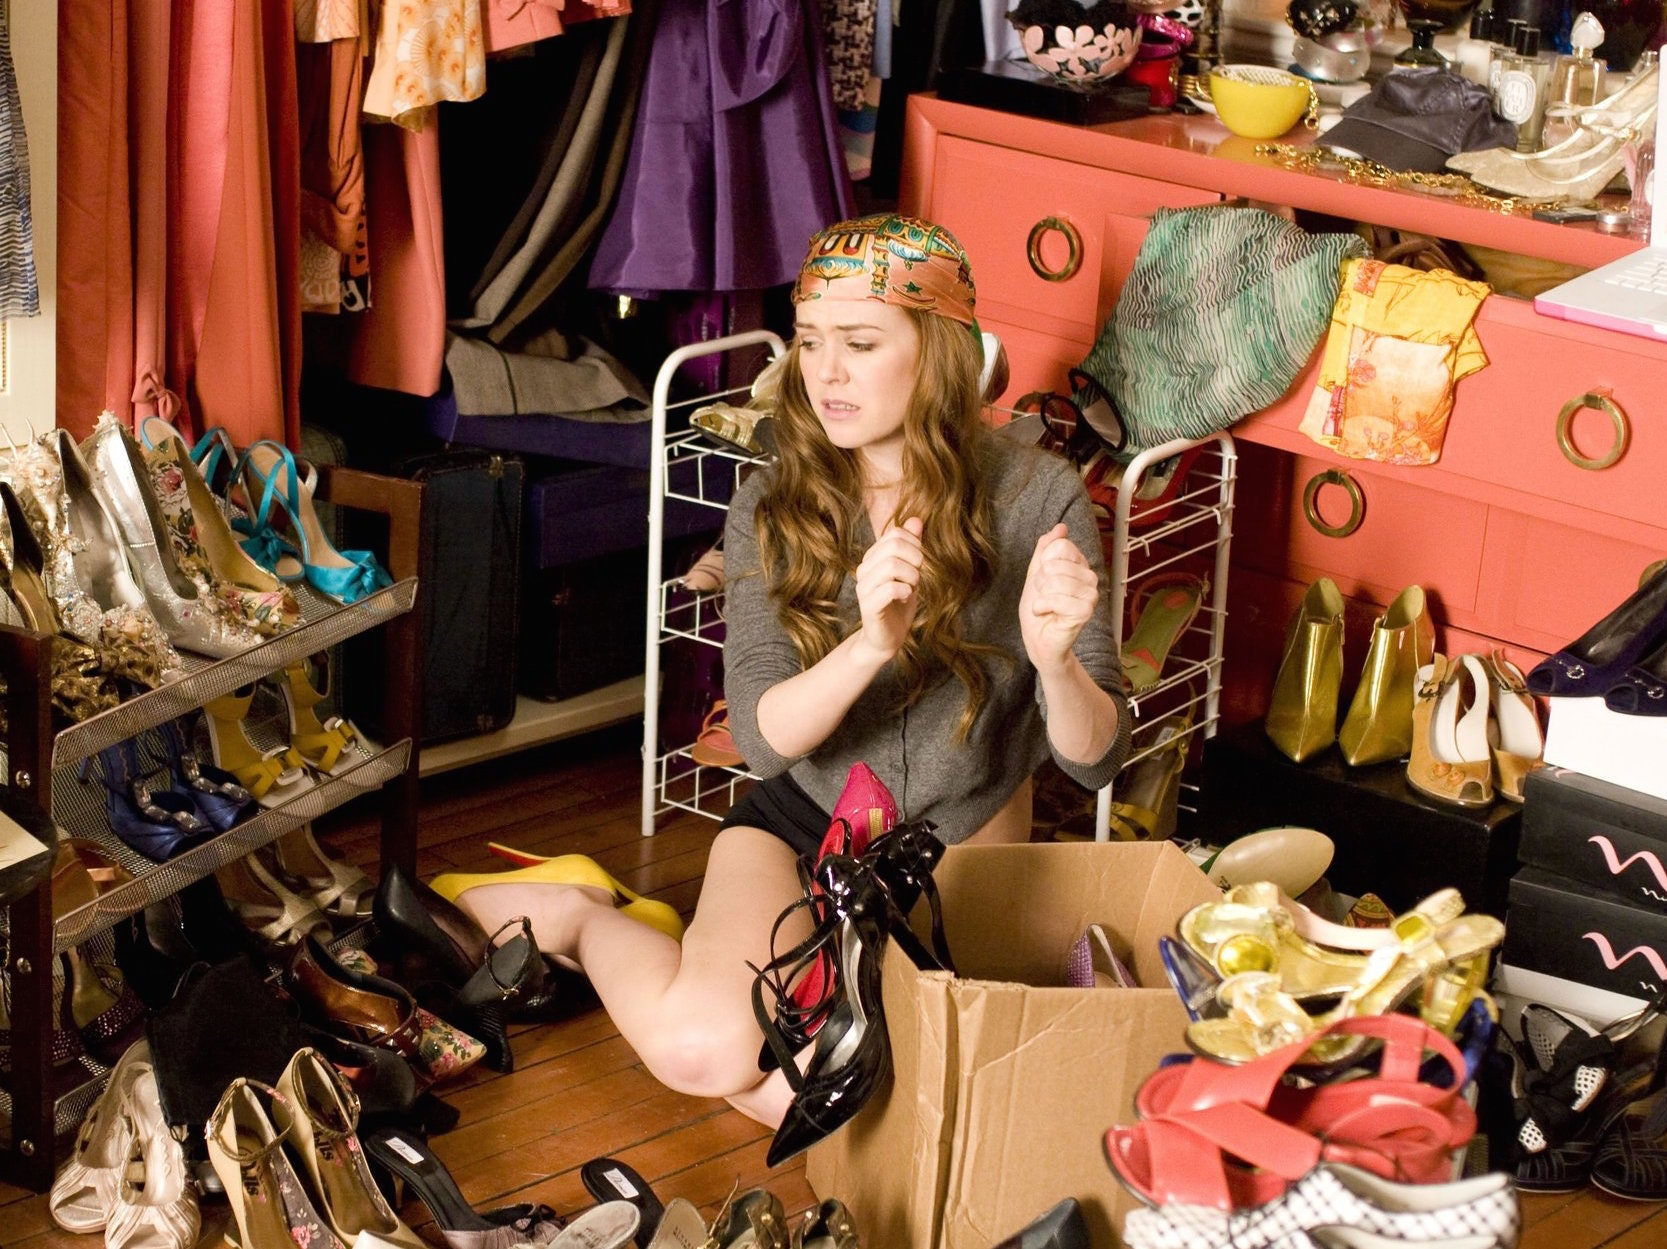 Confessions Of A Shopaholic Has Message That Never Stops Being Relevant